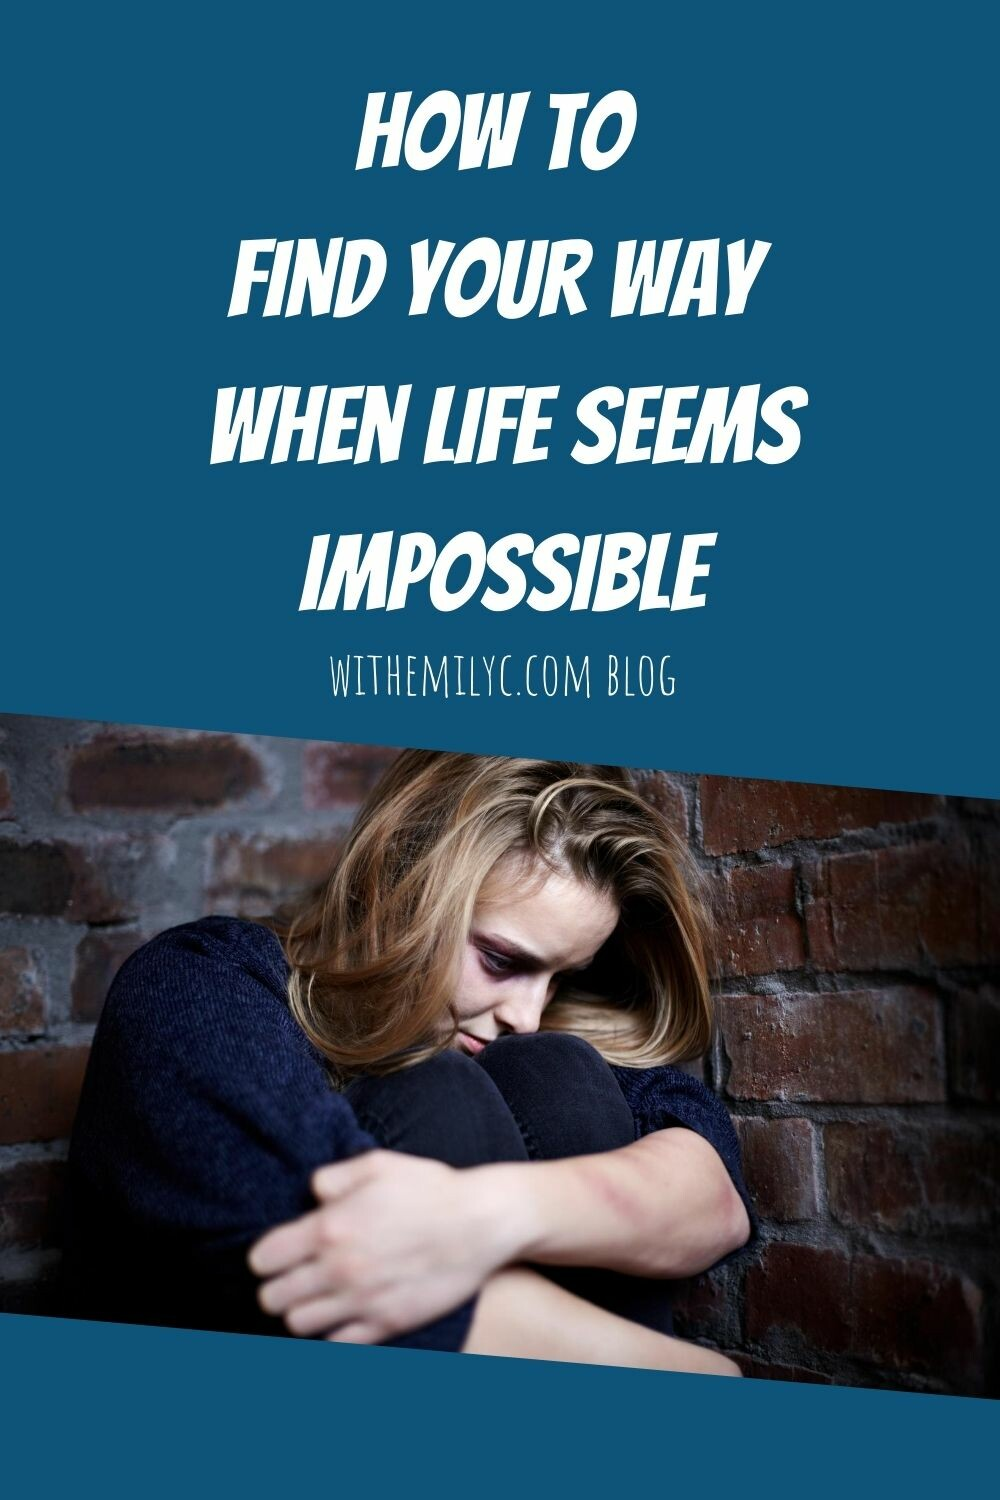 How to Find Your Way When Life seems Impossible